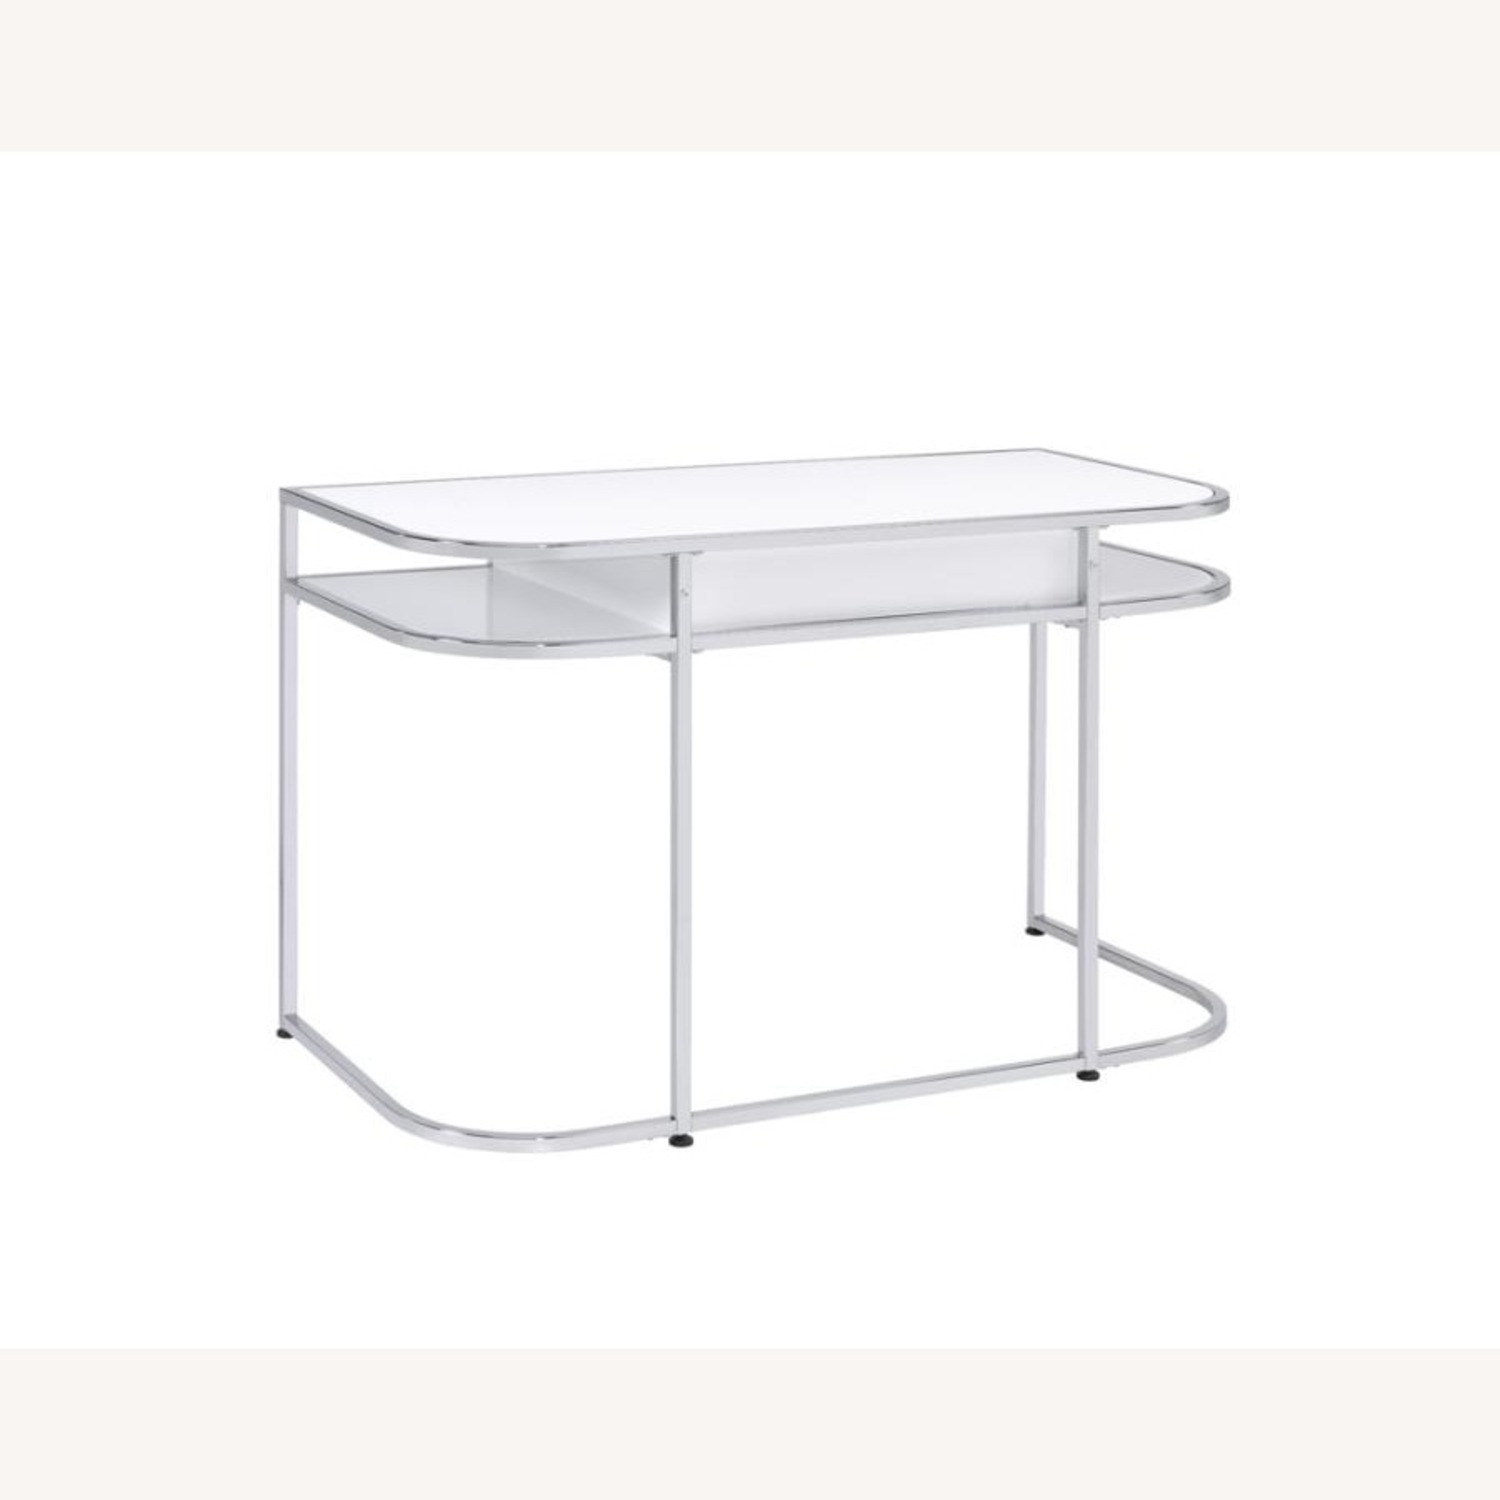 Writing Desk In White High Gloss Lacquer Finish - image-5